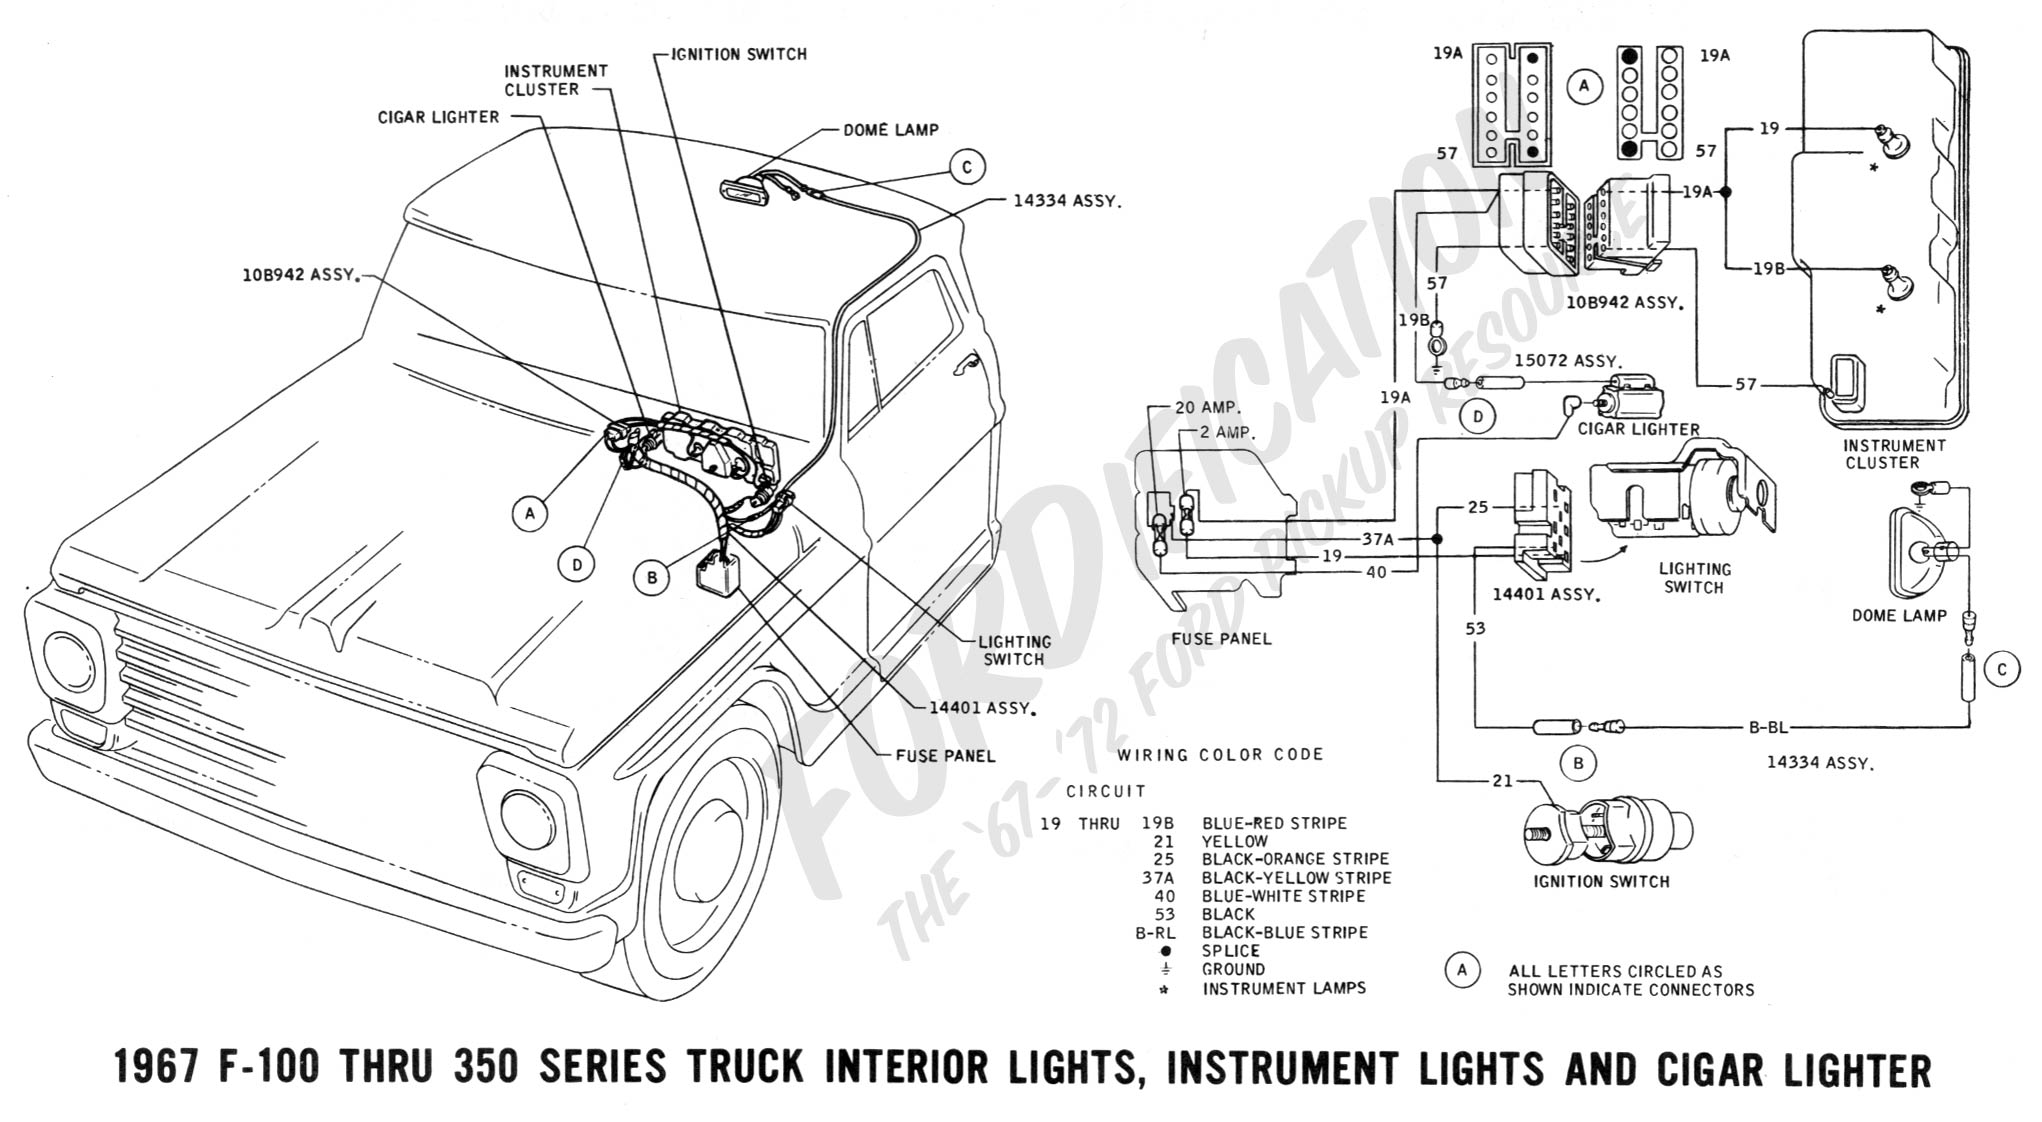 Schematics H: 1972 Ford F100 Turn Signal Wiring Diagram At Galaxydownloads.co